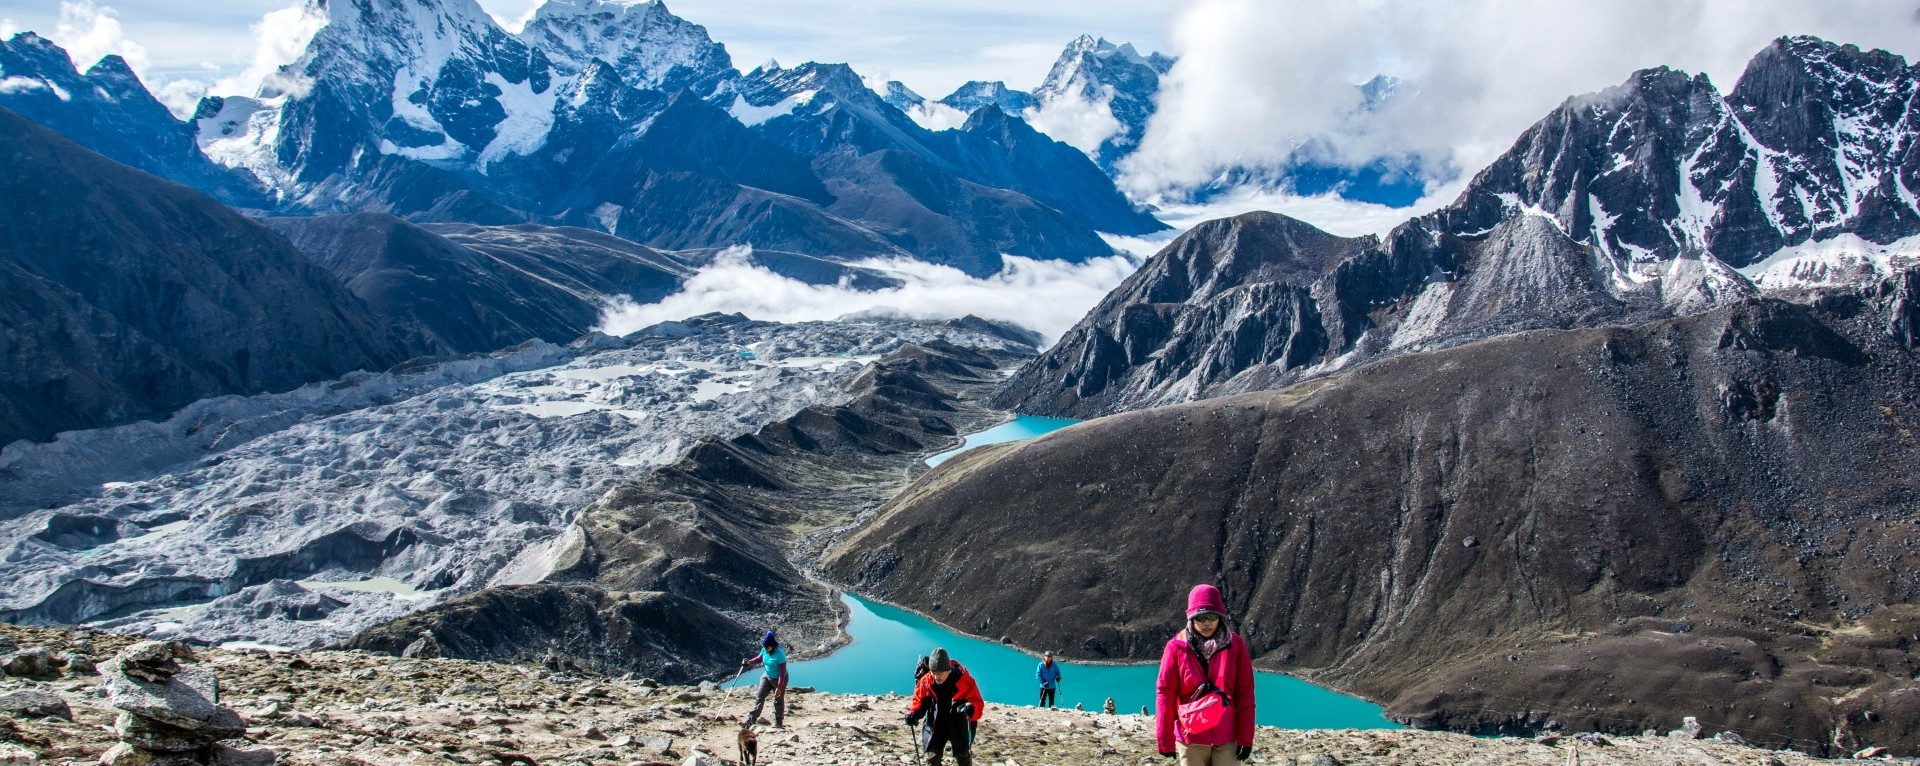 On the way to Gokyo ri, Ngozungpa Glacier